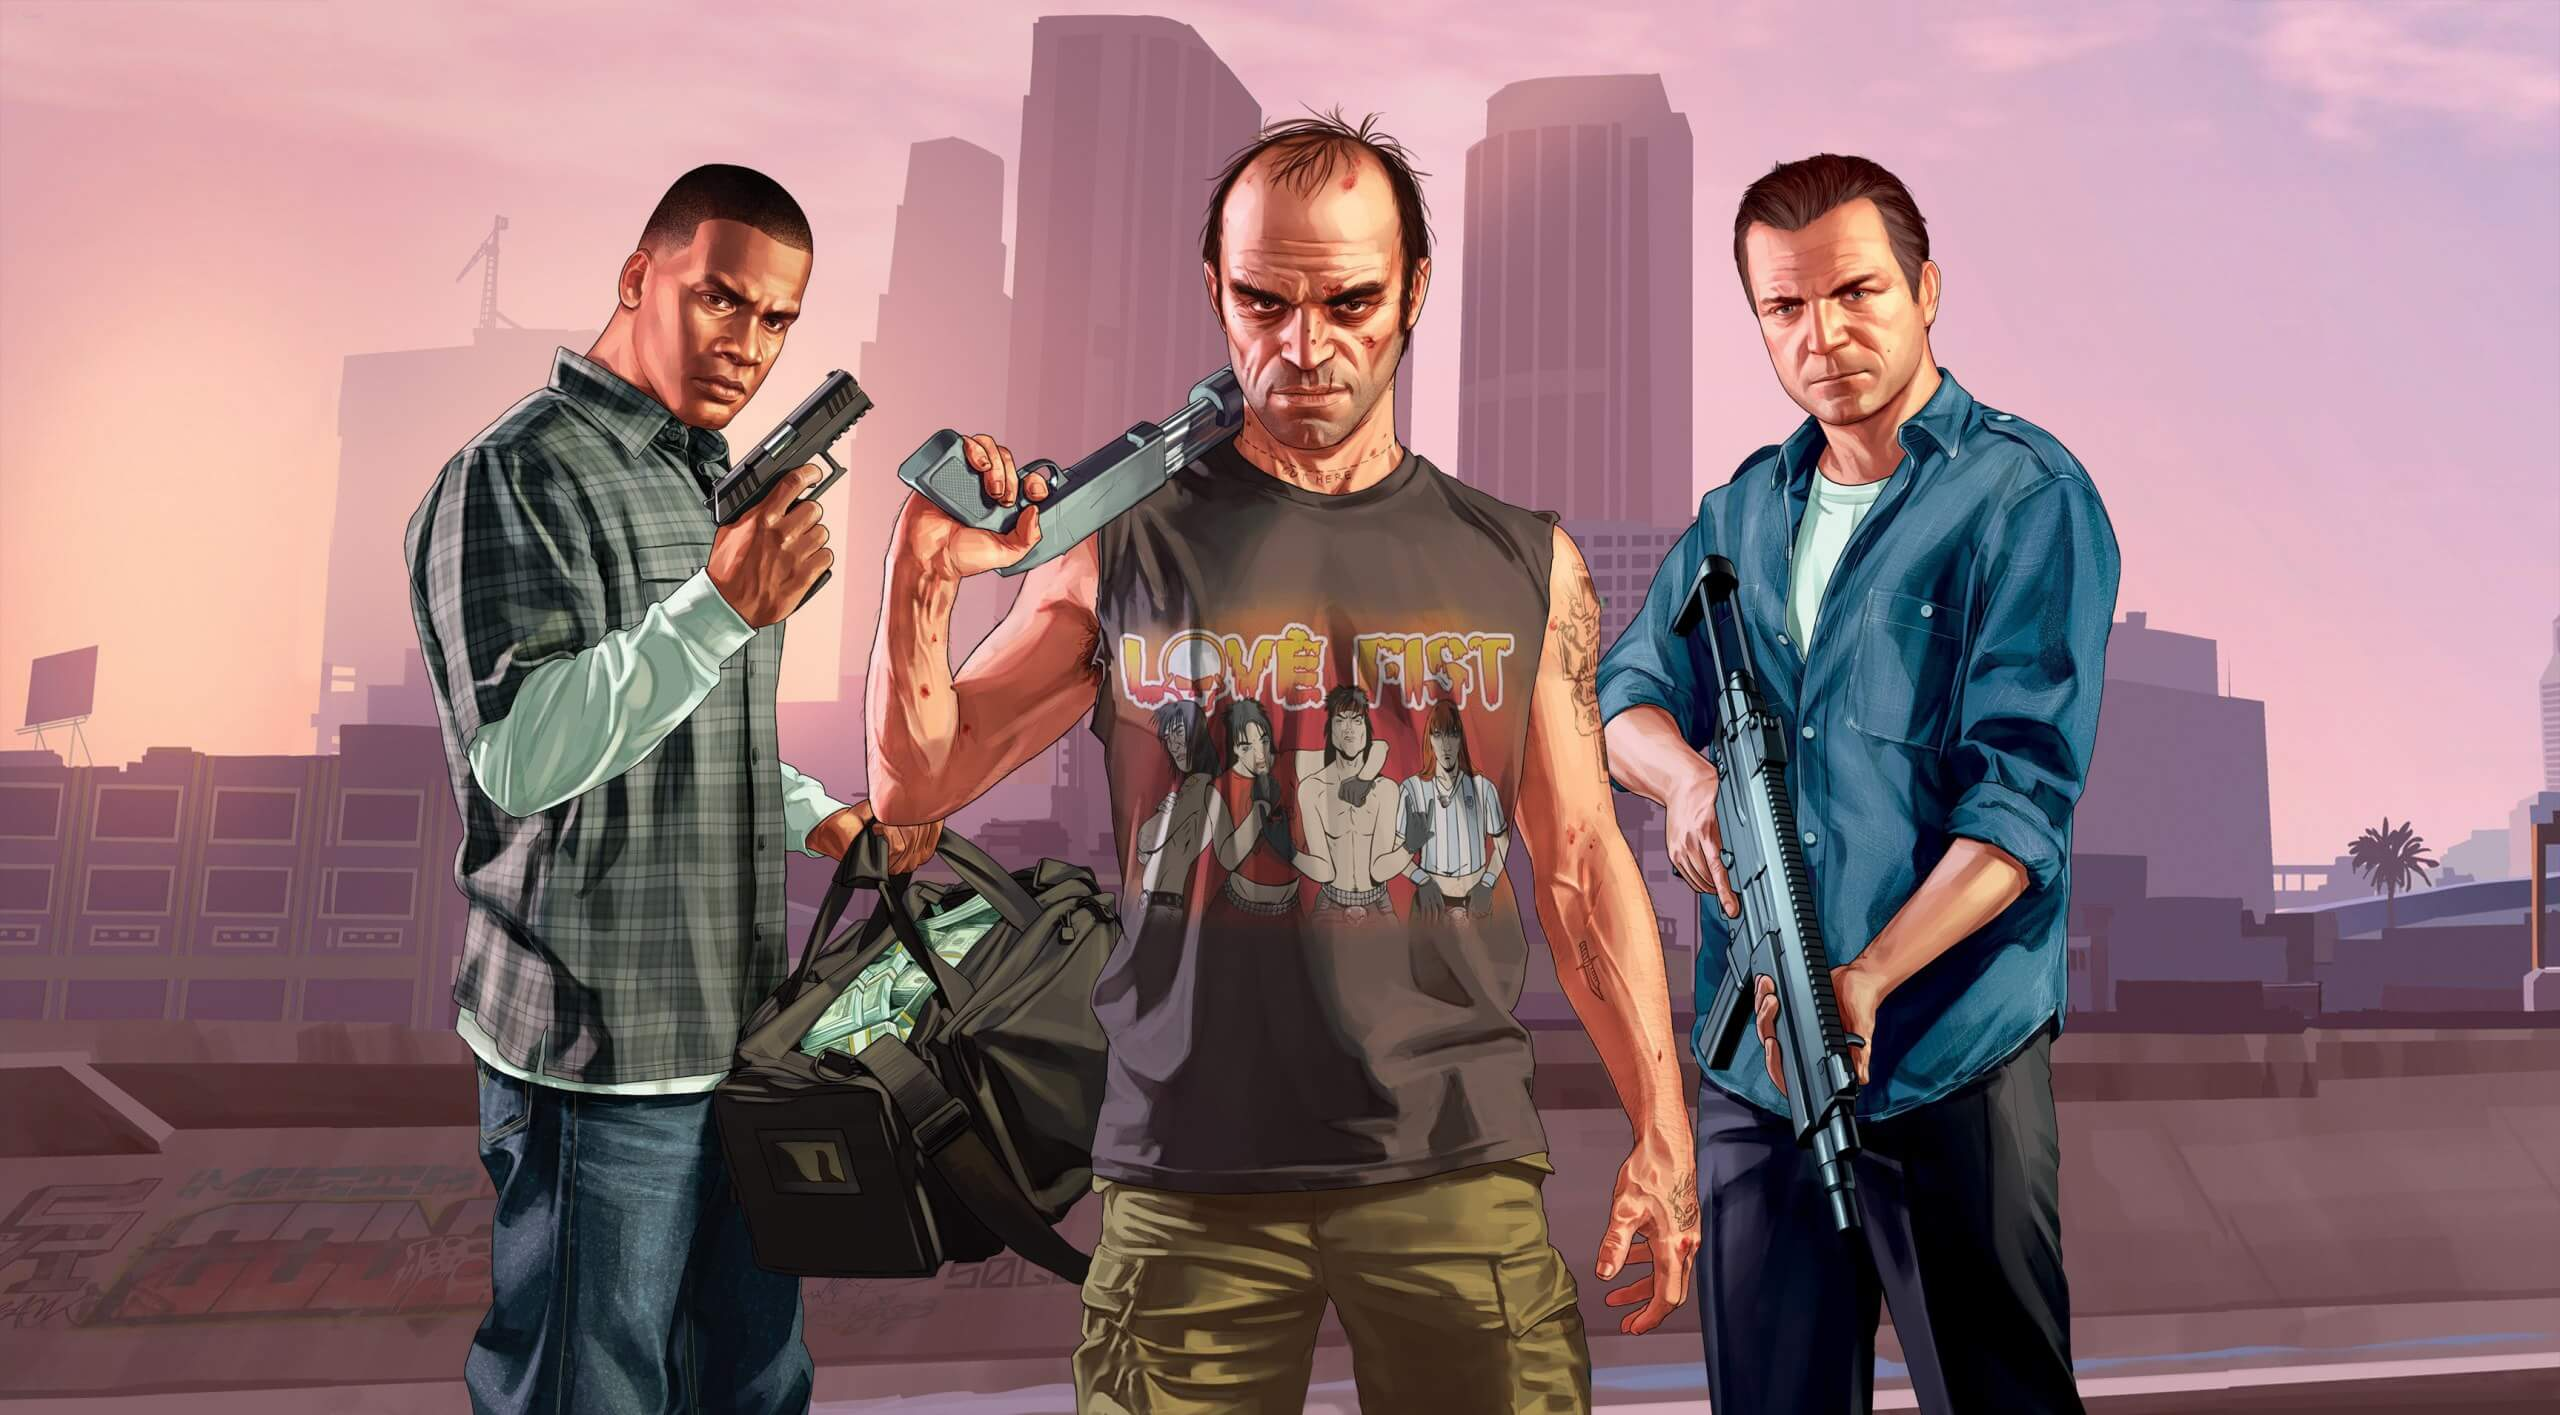 Grand Theft Auto V might be getting the VR treatment